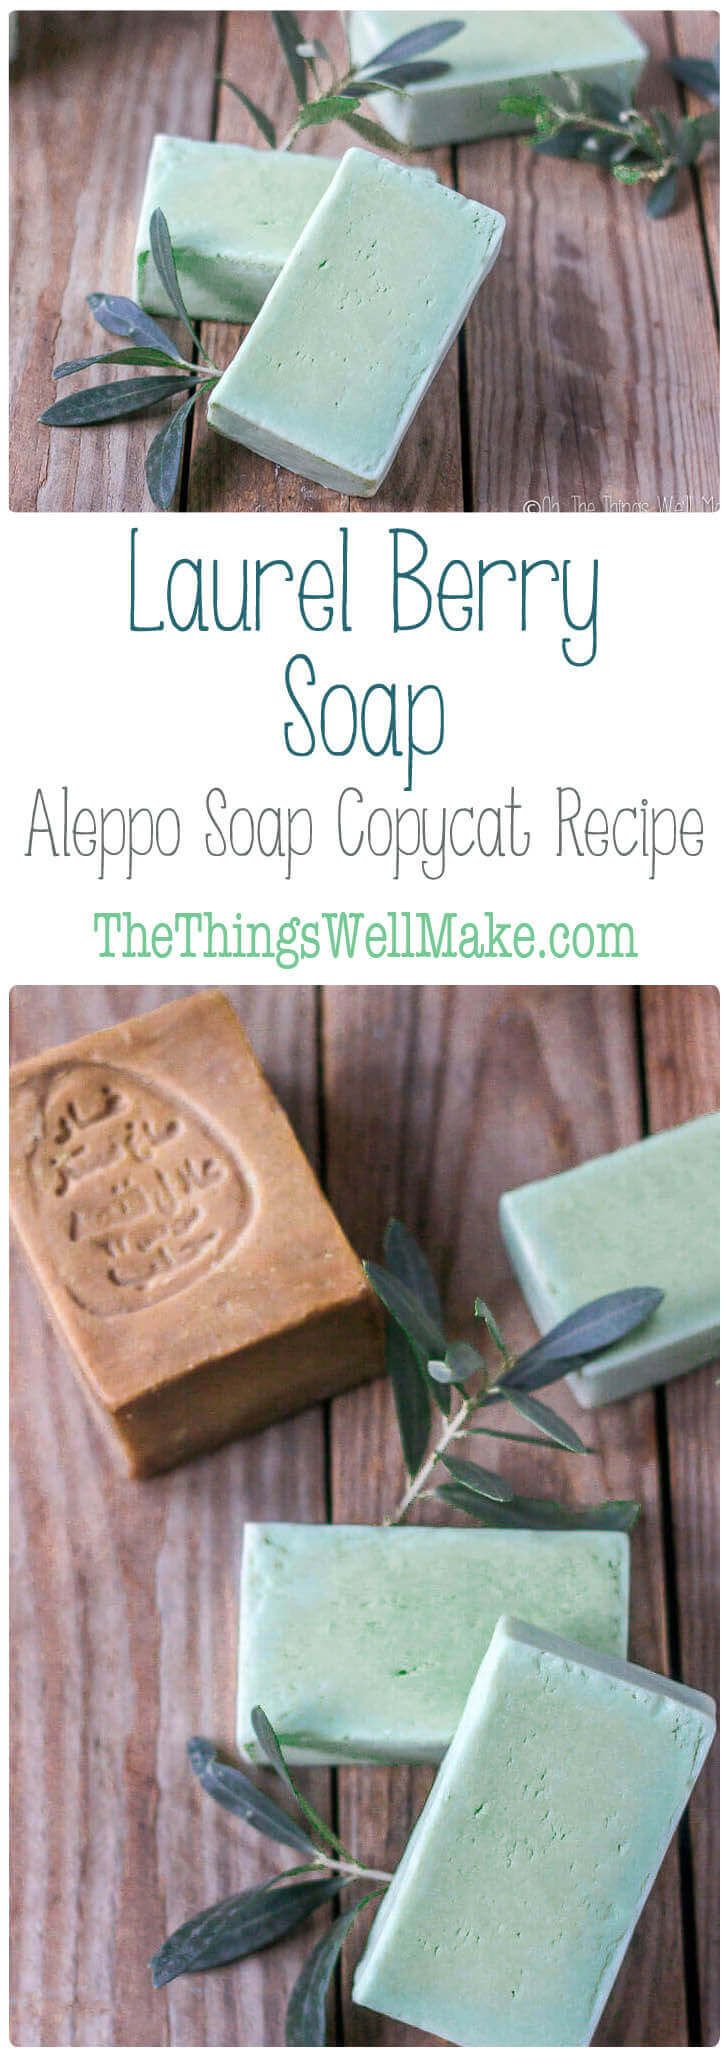 This laurel berry soap, or Aleppo soap copycat recipe, is amodified Castile soap that is mild, conditioning, and great for a number of skin conditions. #aleppo #soap #laurel via @thethingswellmake